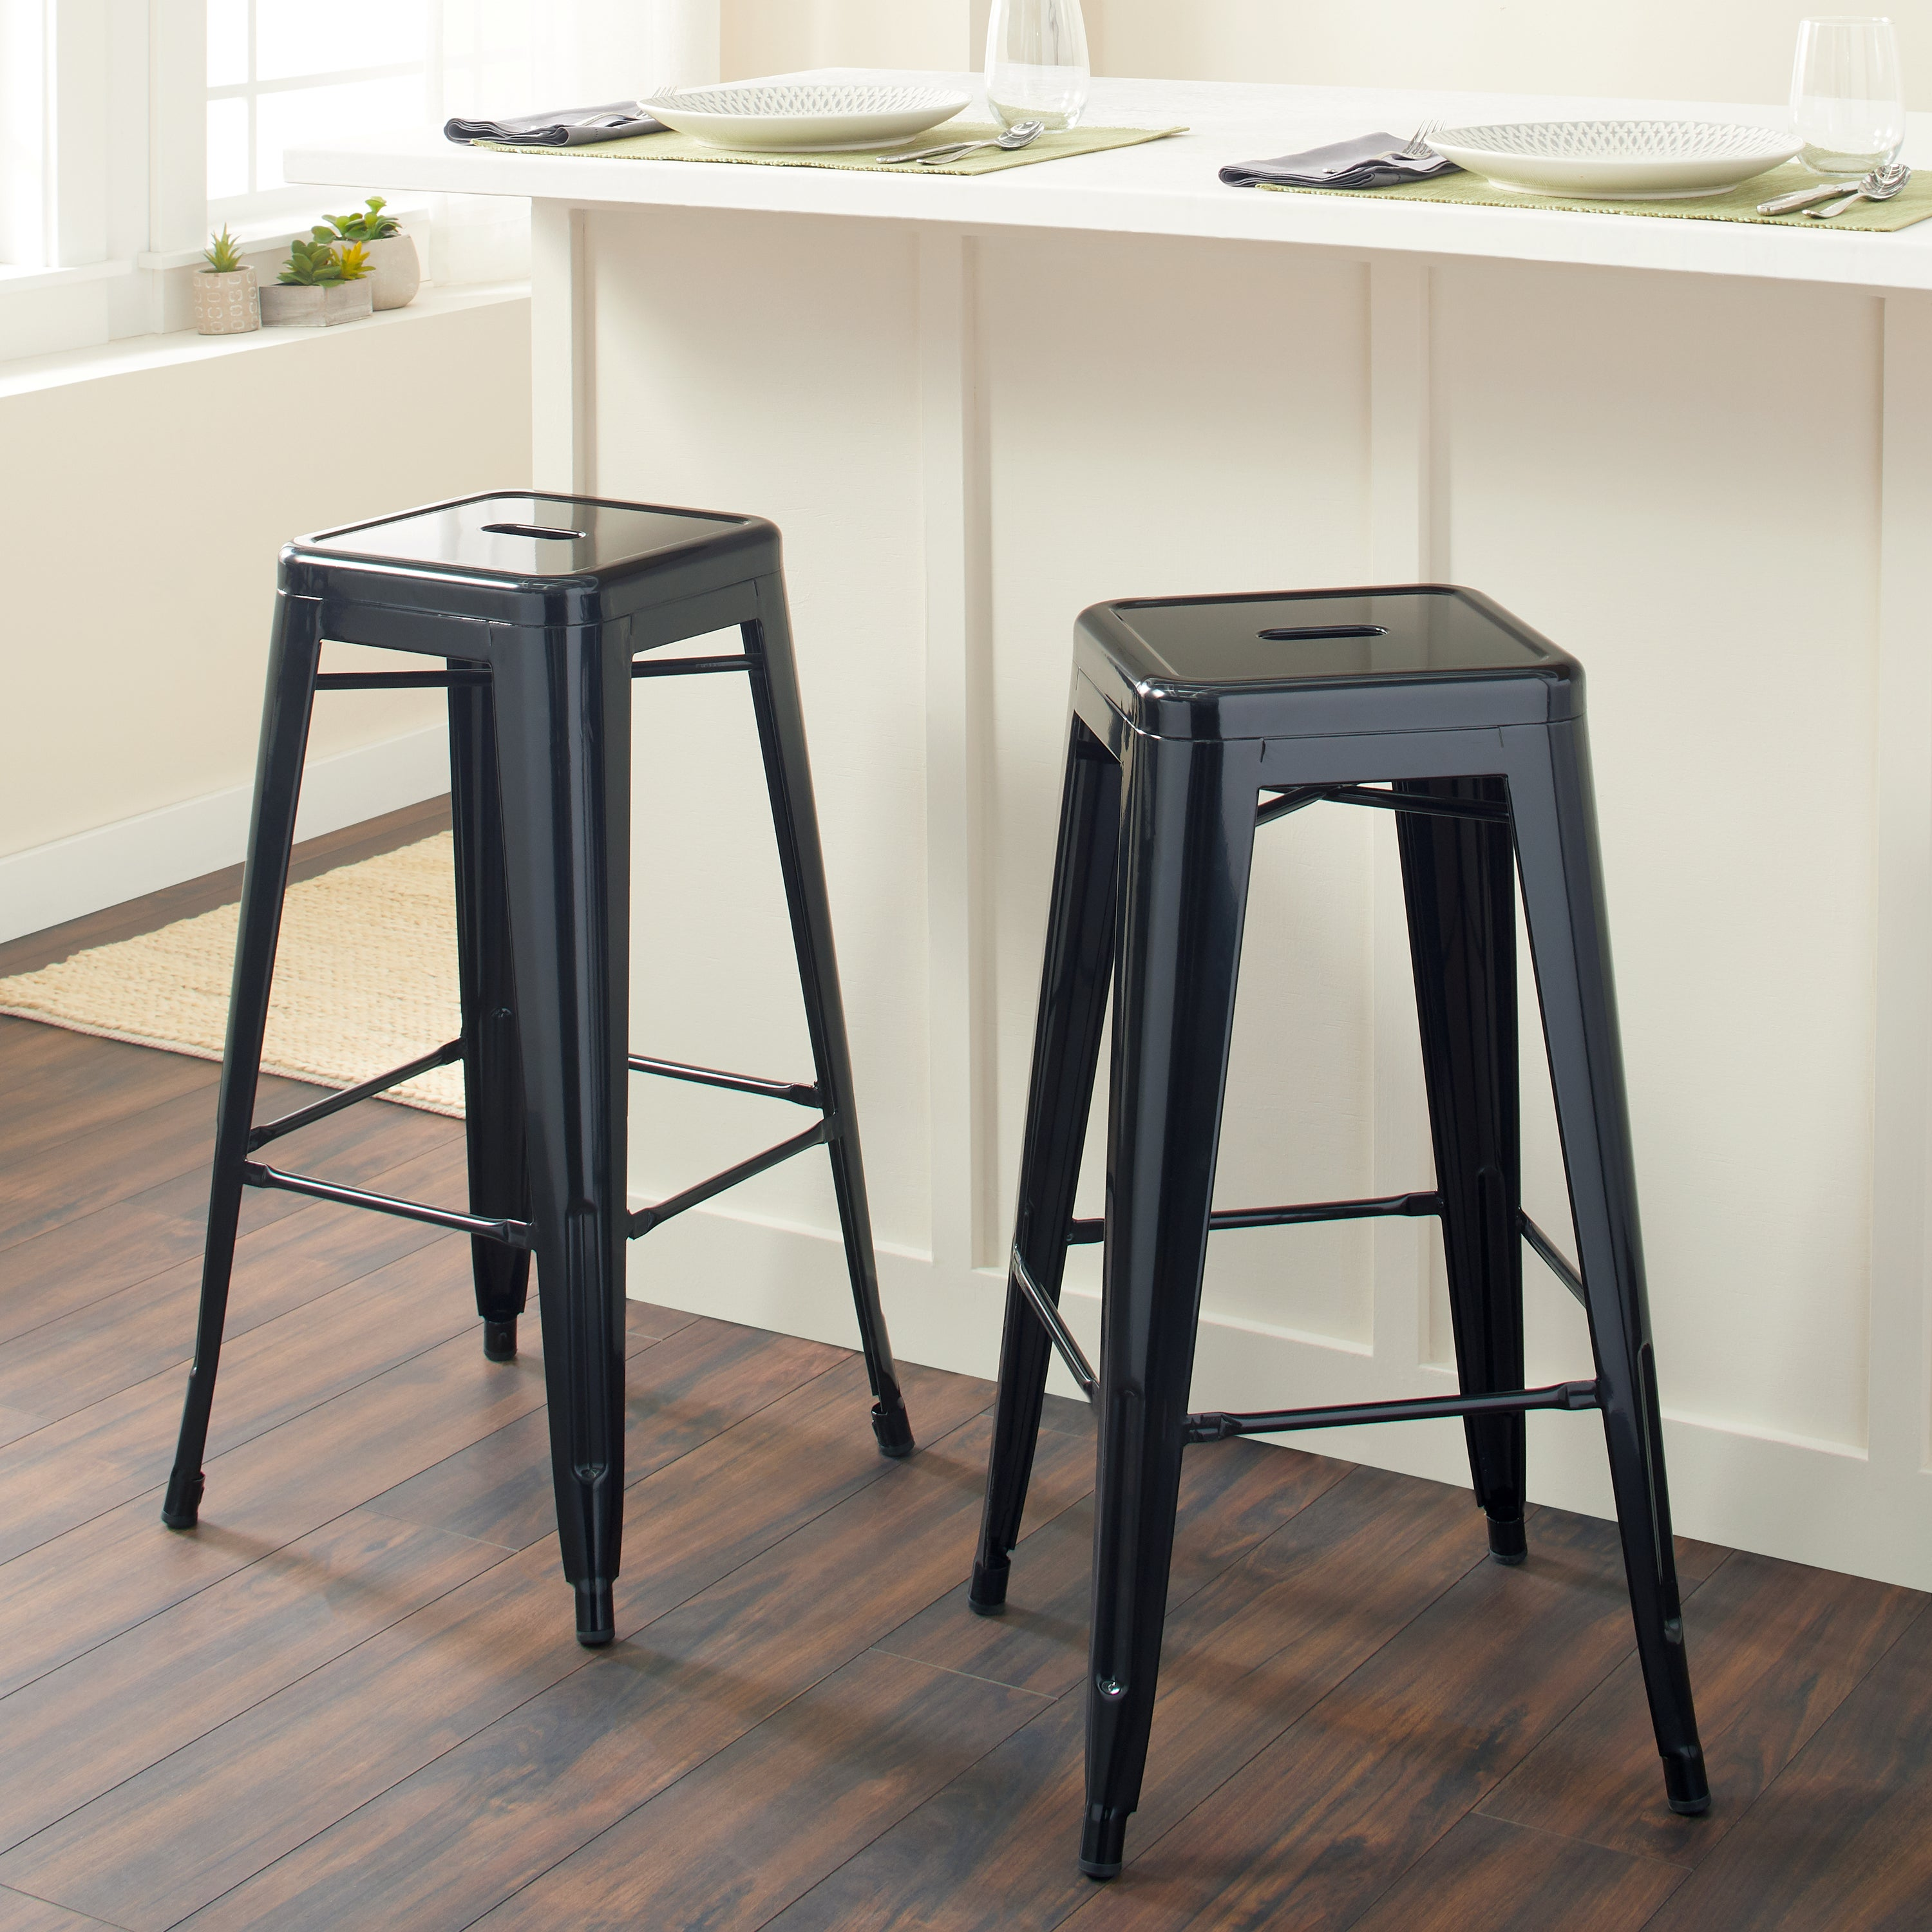 Remarkable I Love Living 30 Inch Black Metal Bar Stools Set Of 2 Pabps2019 Chair Design Images Pabps2019Com